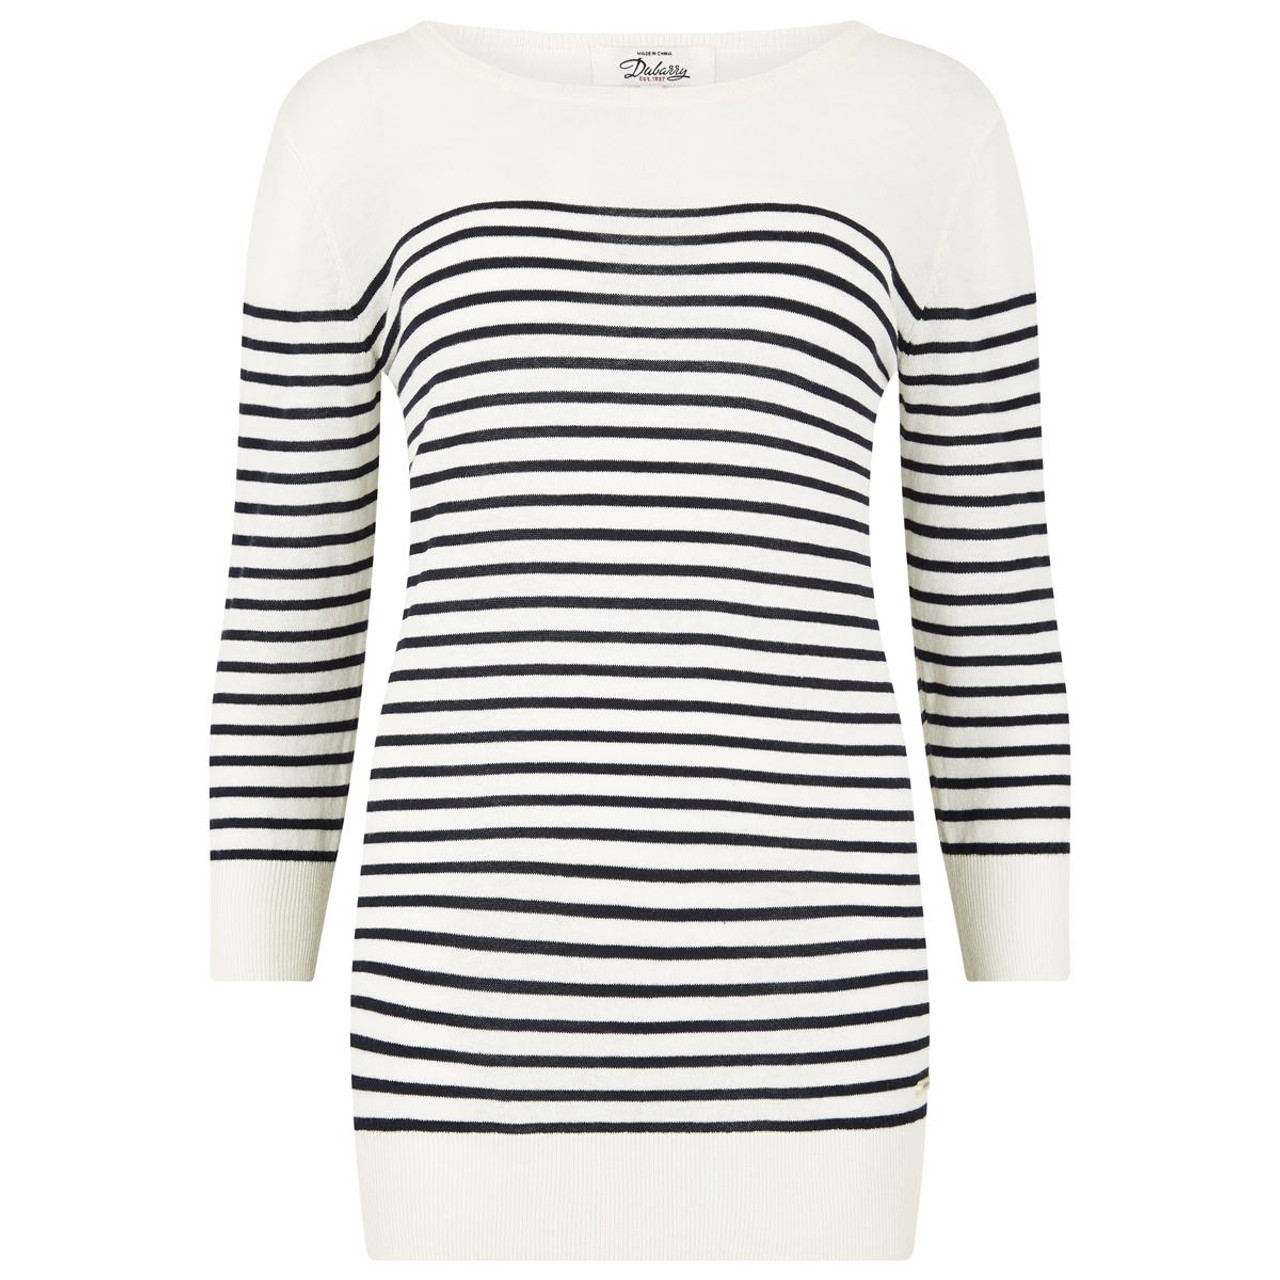 Dubarry Dunraven Top in White